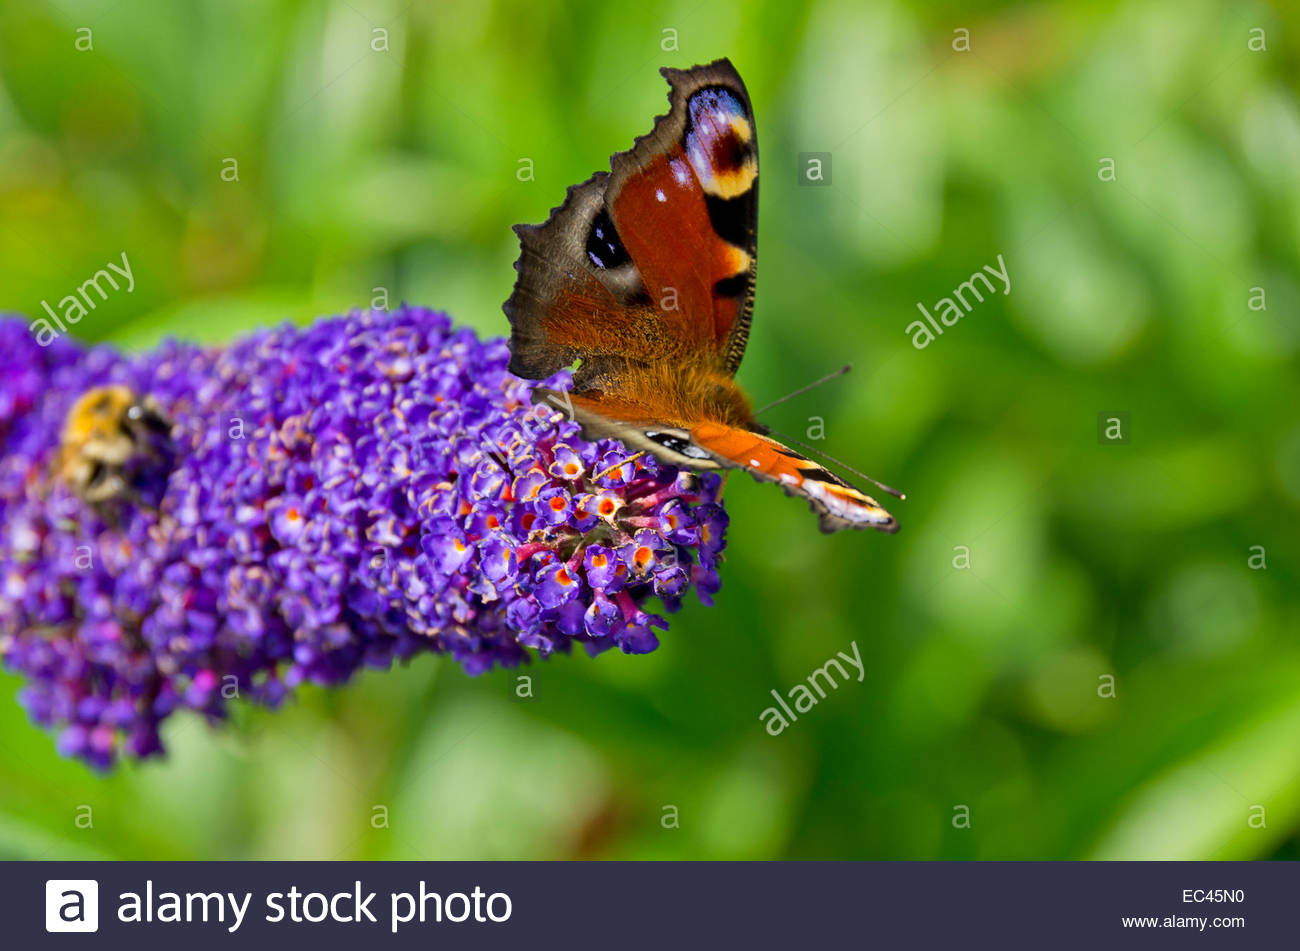 Peacock butterfly, Inachis io, on lilac blossom - Stock Image